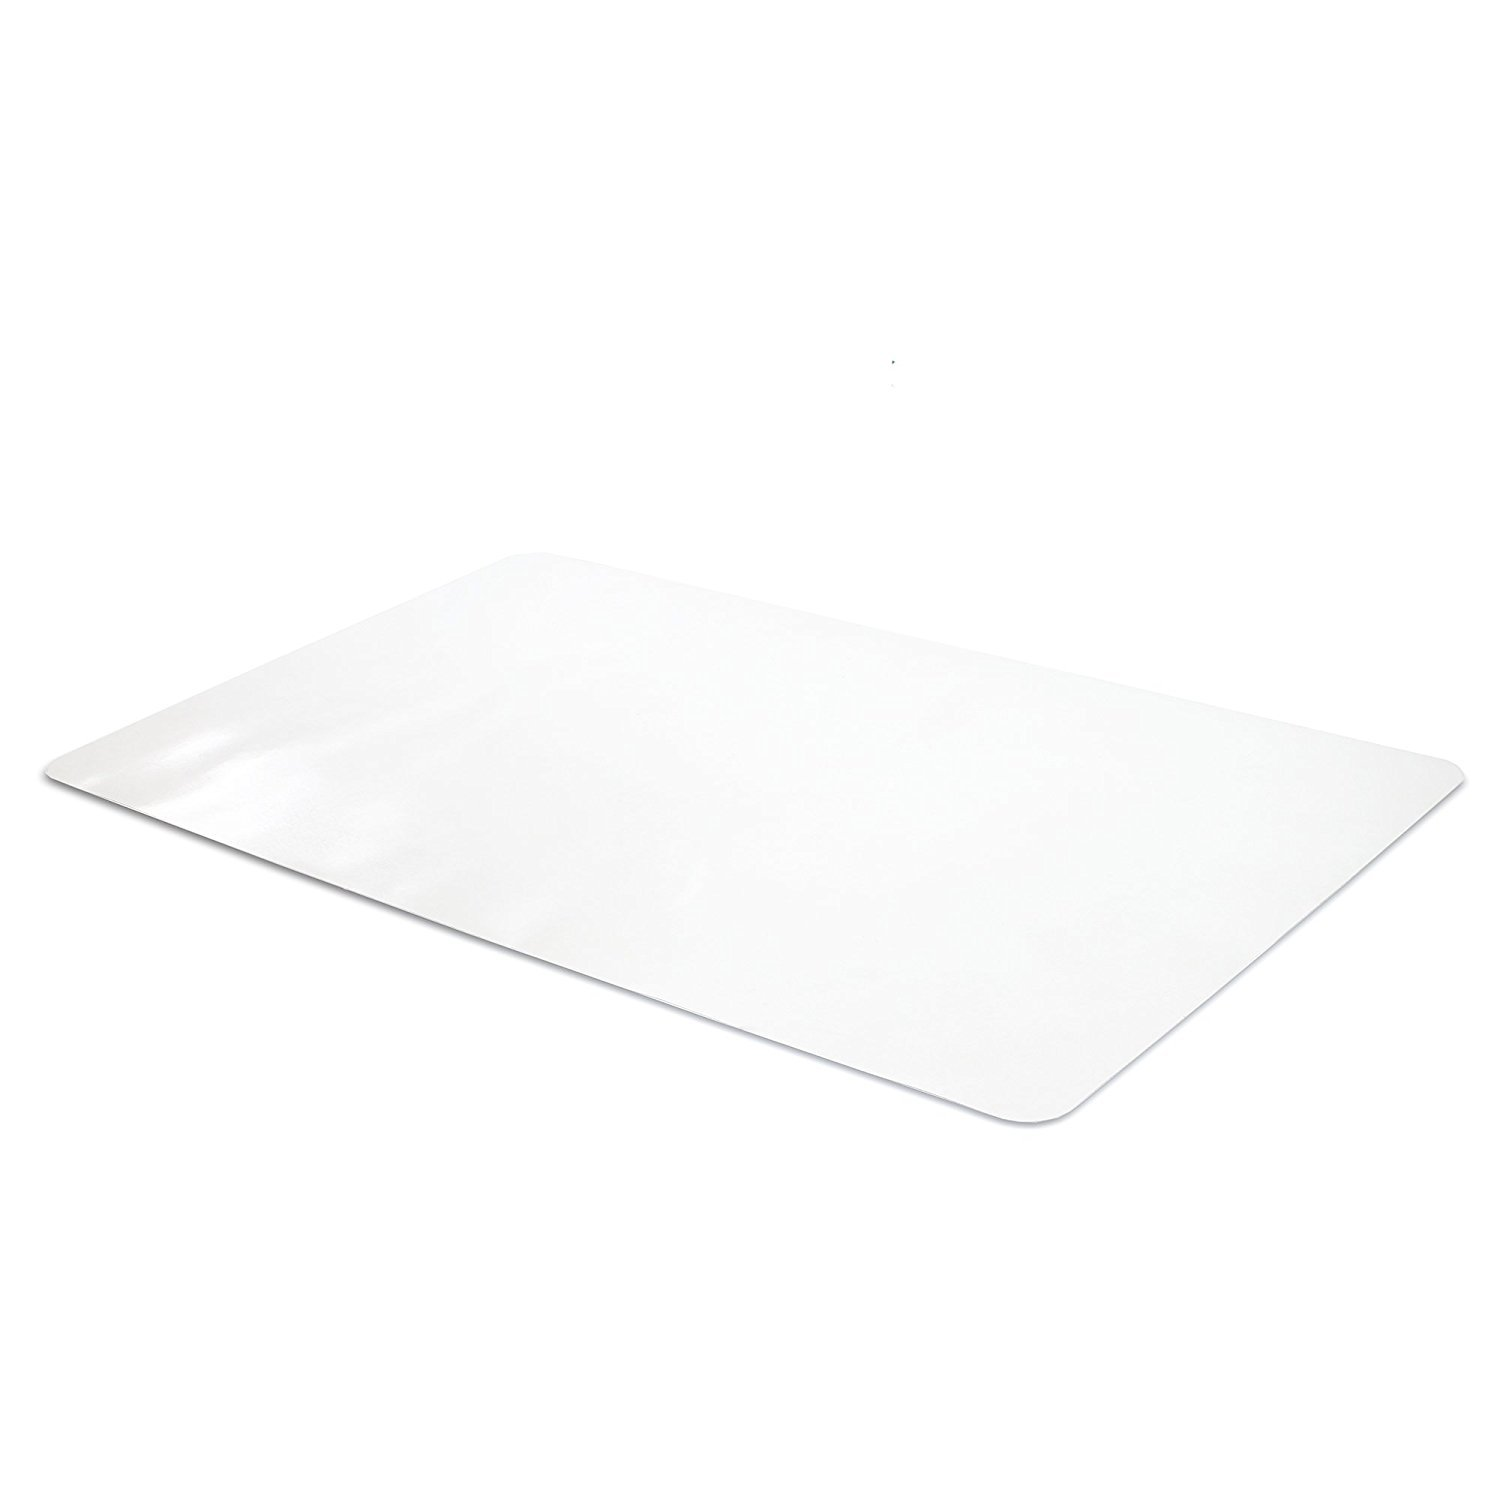 Office Desk Mat Clear Textured - 47 x 23 Inch Plastic Computer Pad for Desk